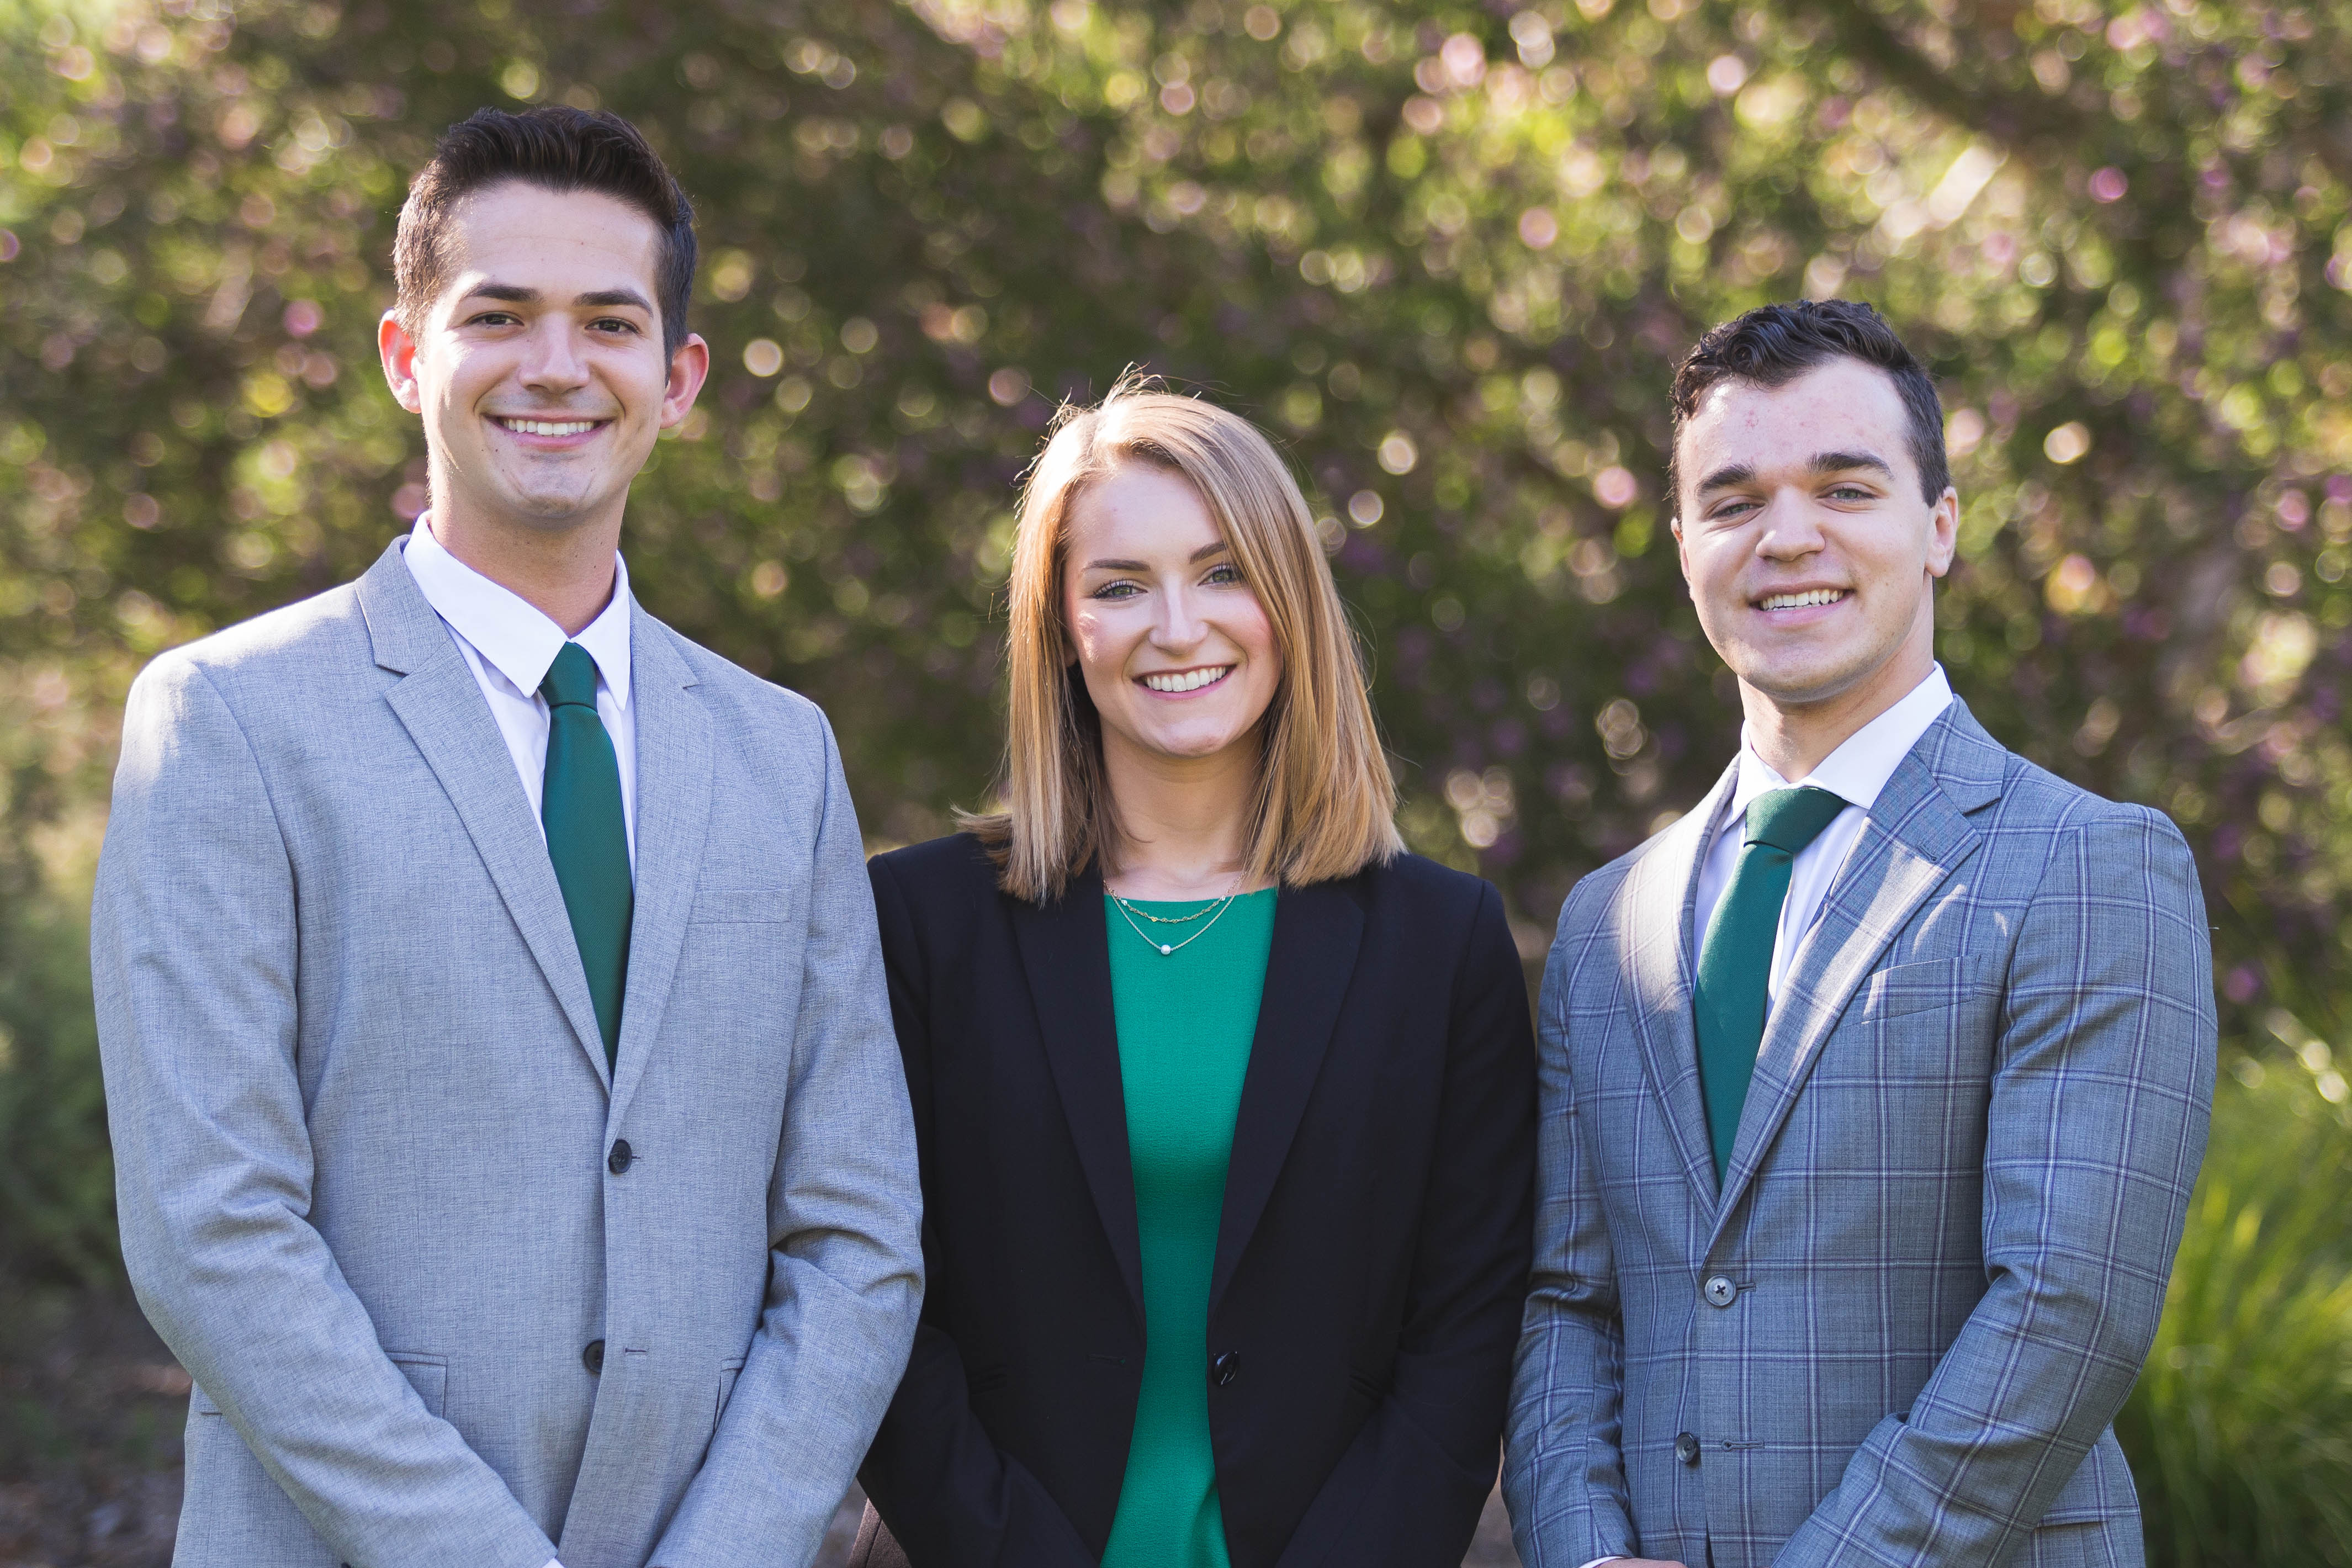 Mark Borges, Elizabeth Roseman, and Rob Moore stand smiling in professional clothing